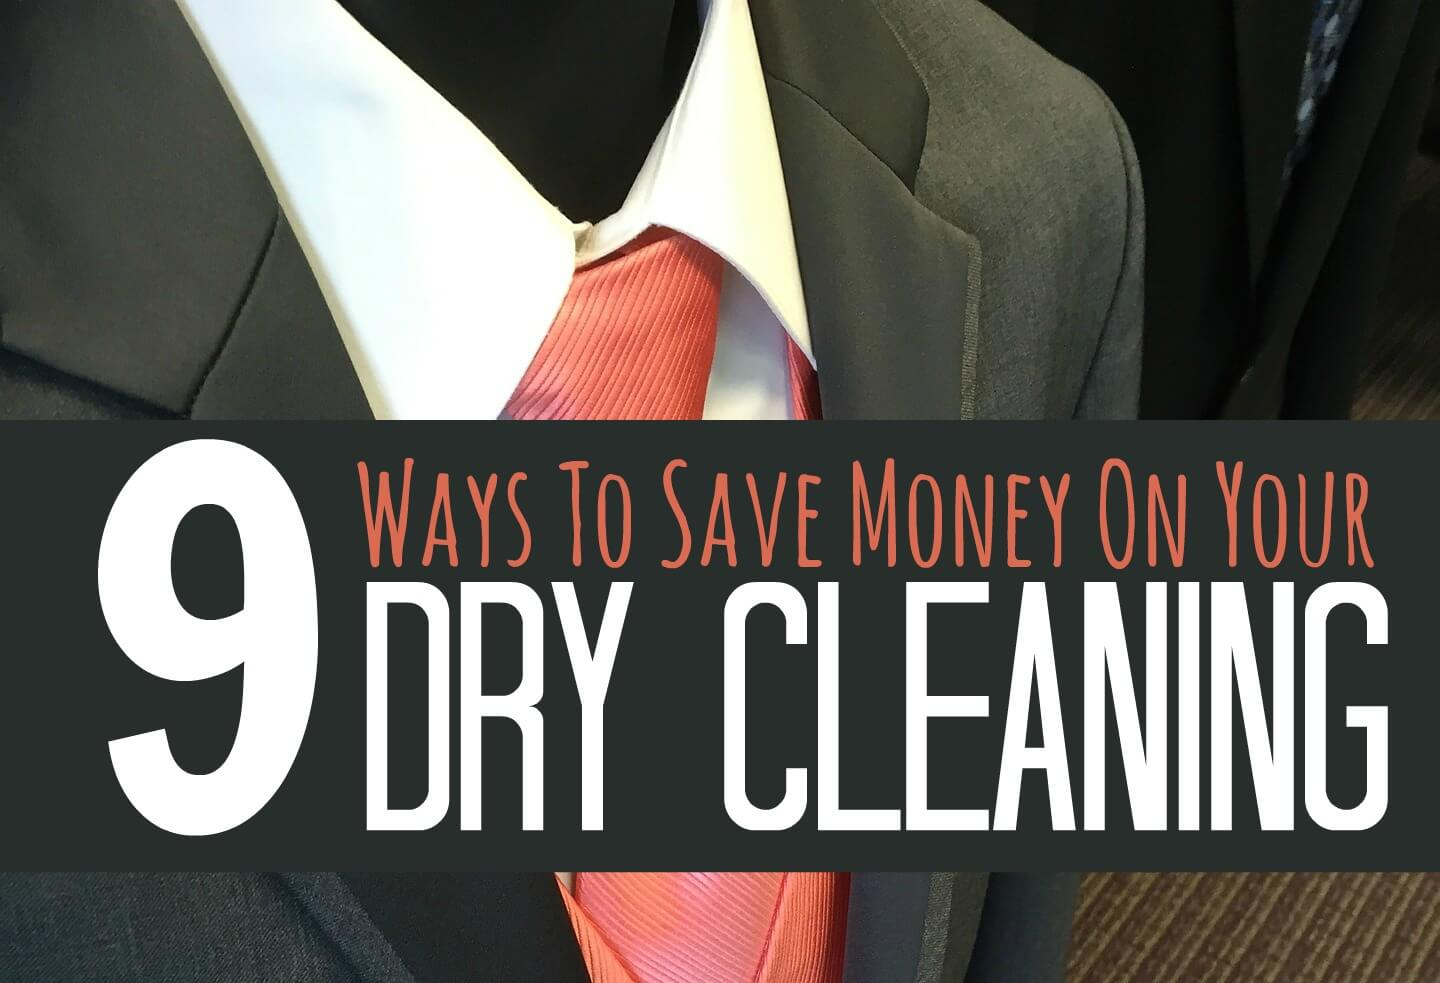 How to Save on Dry Cleaning images